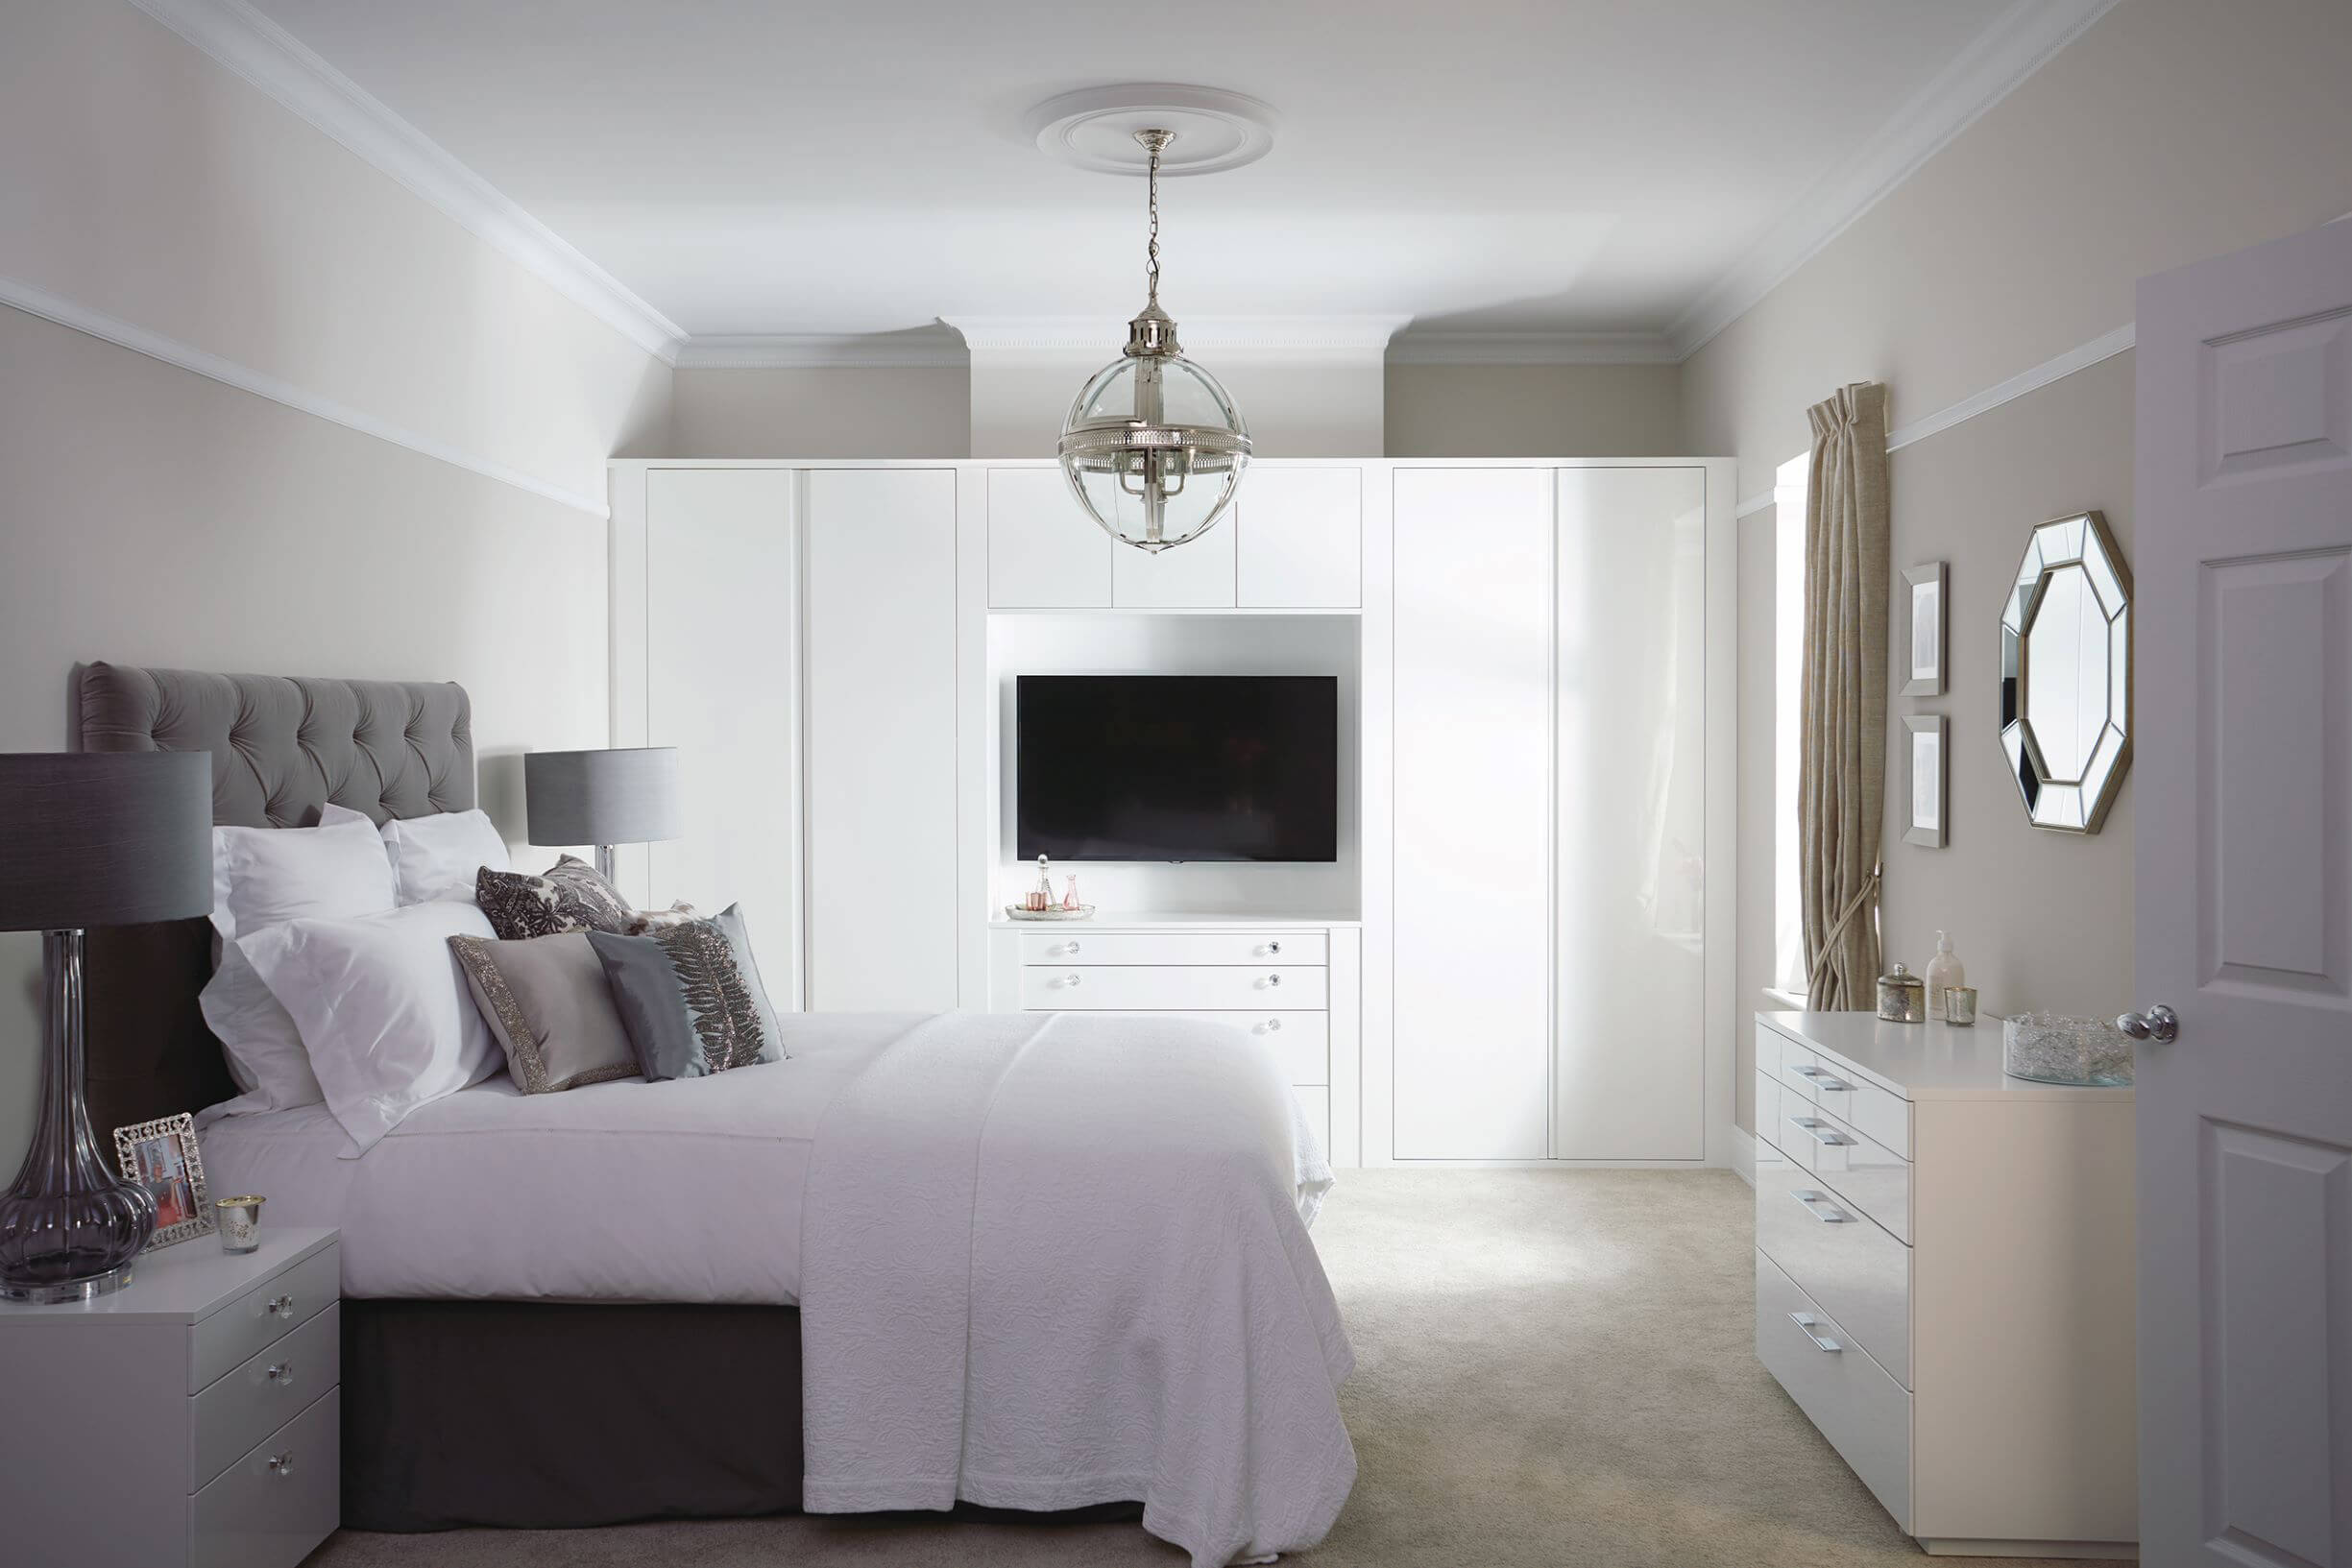 Kindred-Bedrooms-Flow-Gallery3